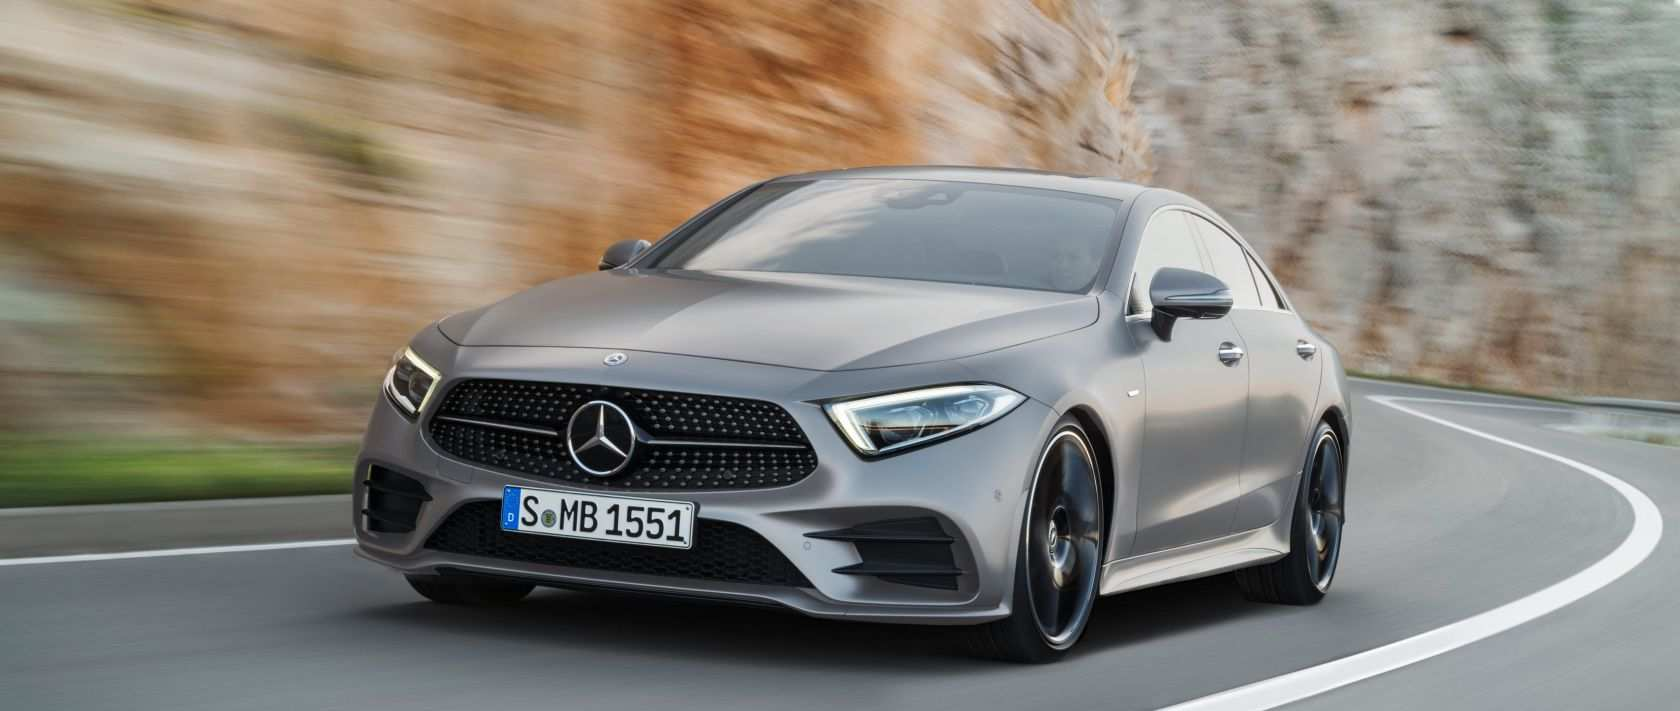 52 New Mercedes 2019 Cls Price Design And Review